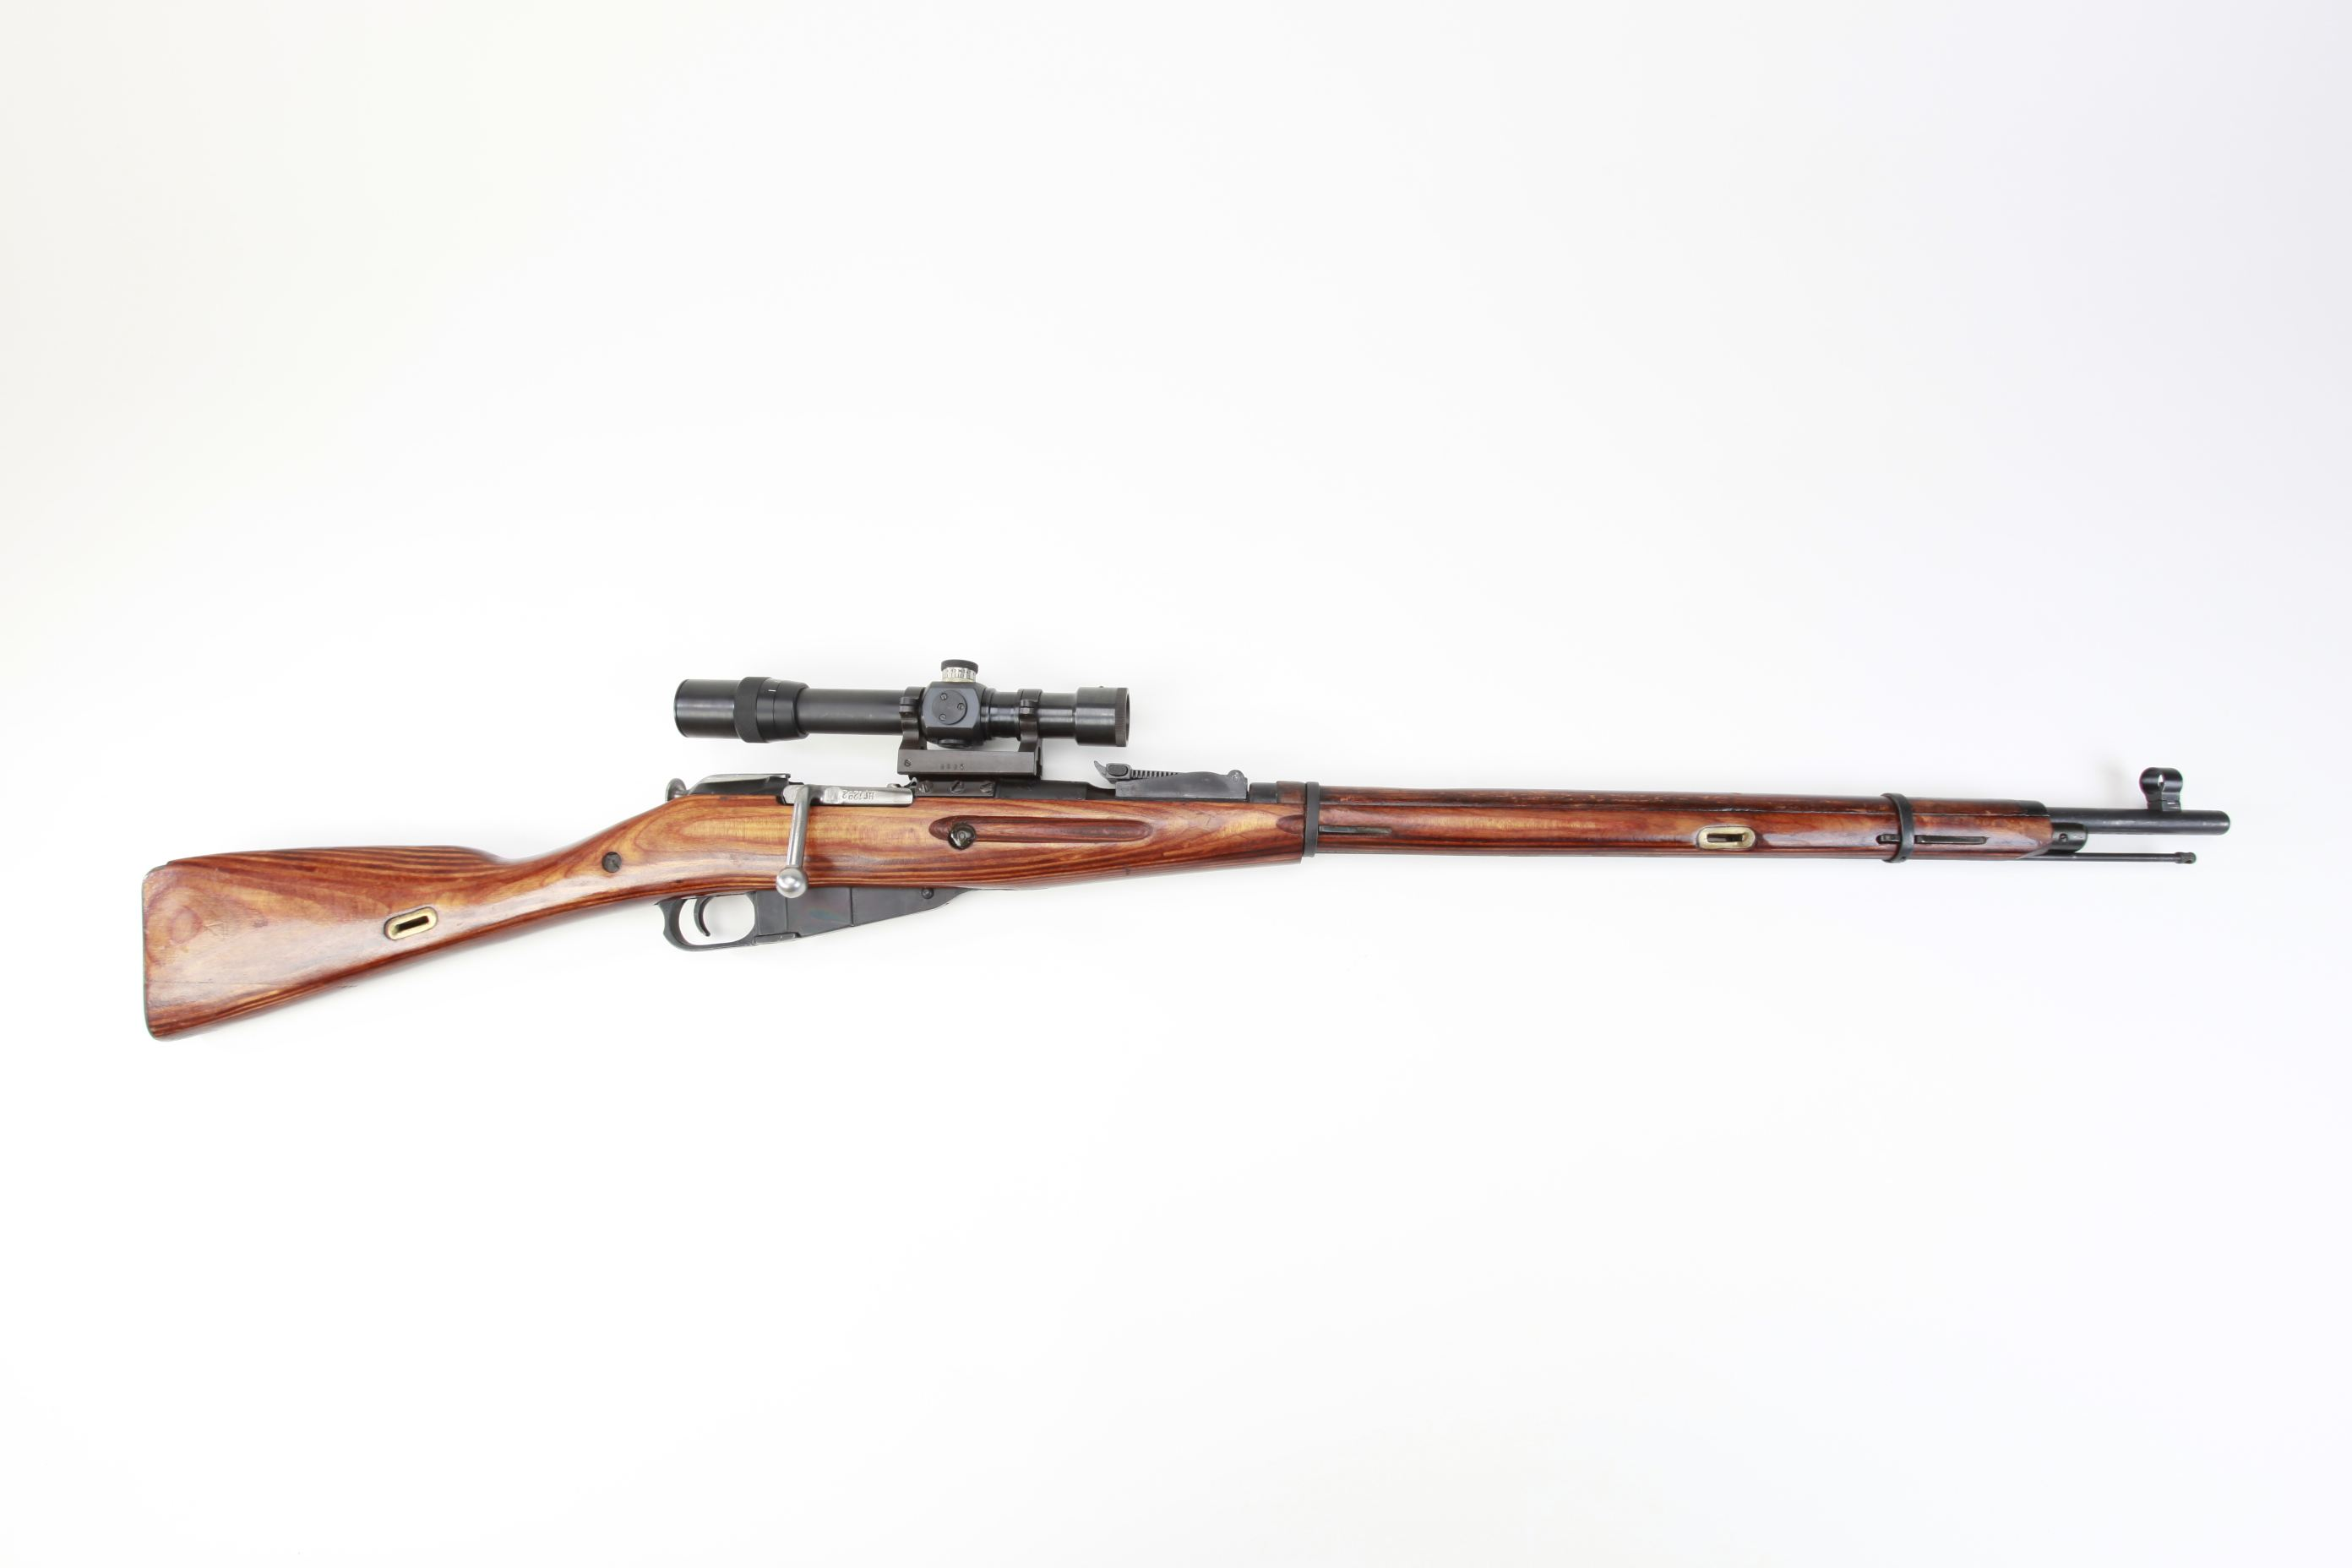 Russian Mosin Nagant M91 30 sniper rifle